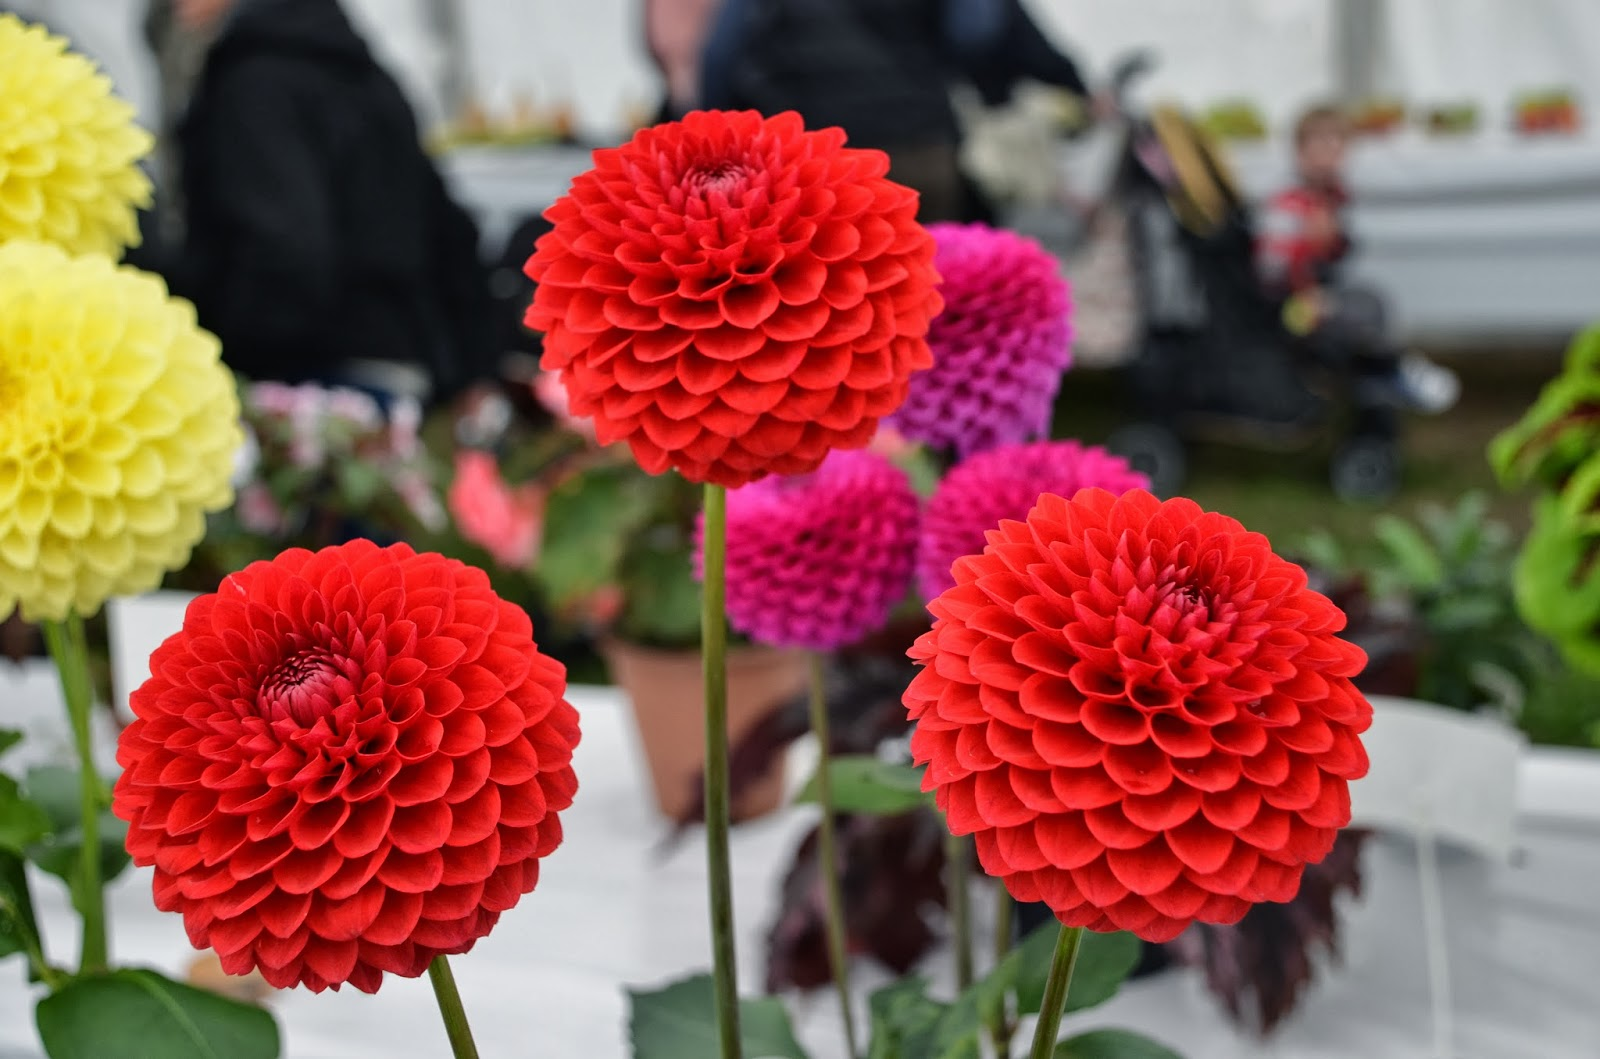 Seed to feed me how to plant dahlia tubers - Best compost for flower pots solutions within reach ...